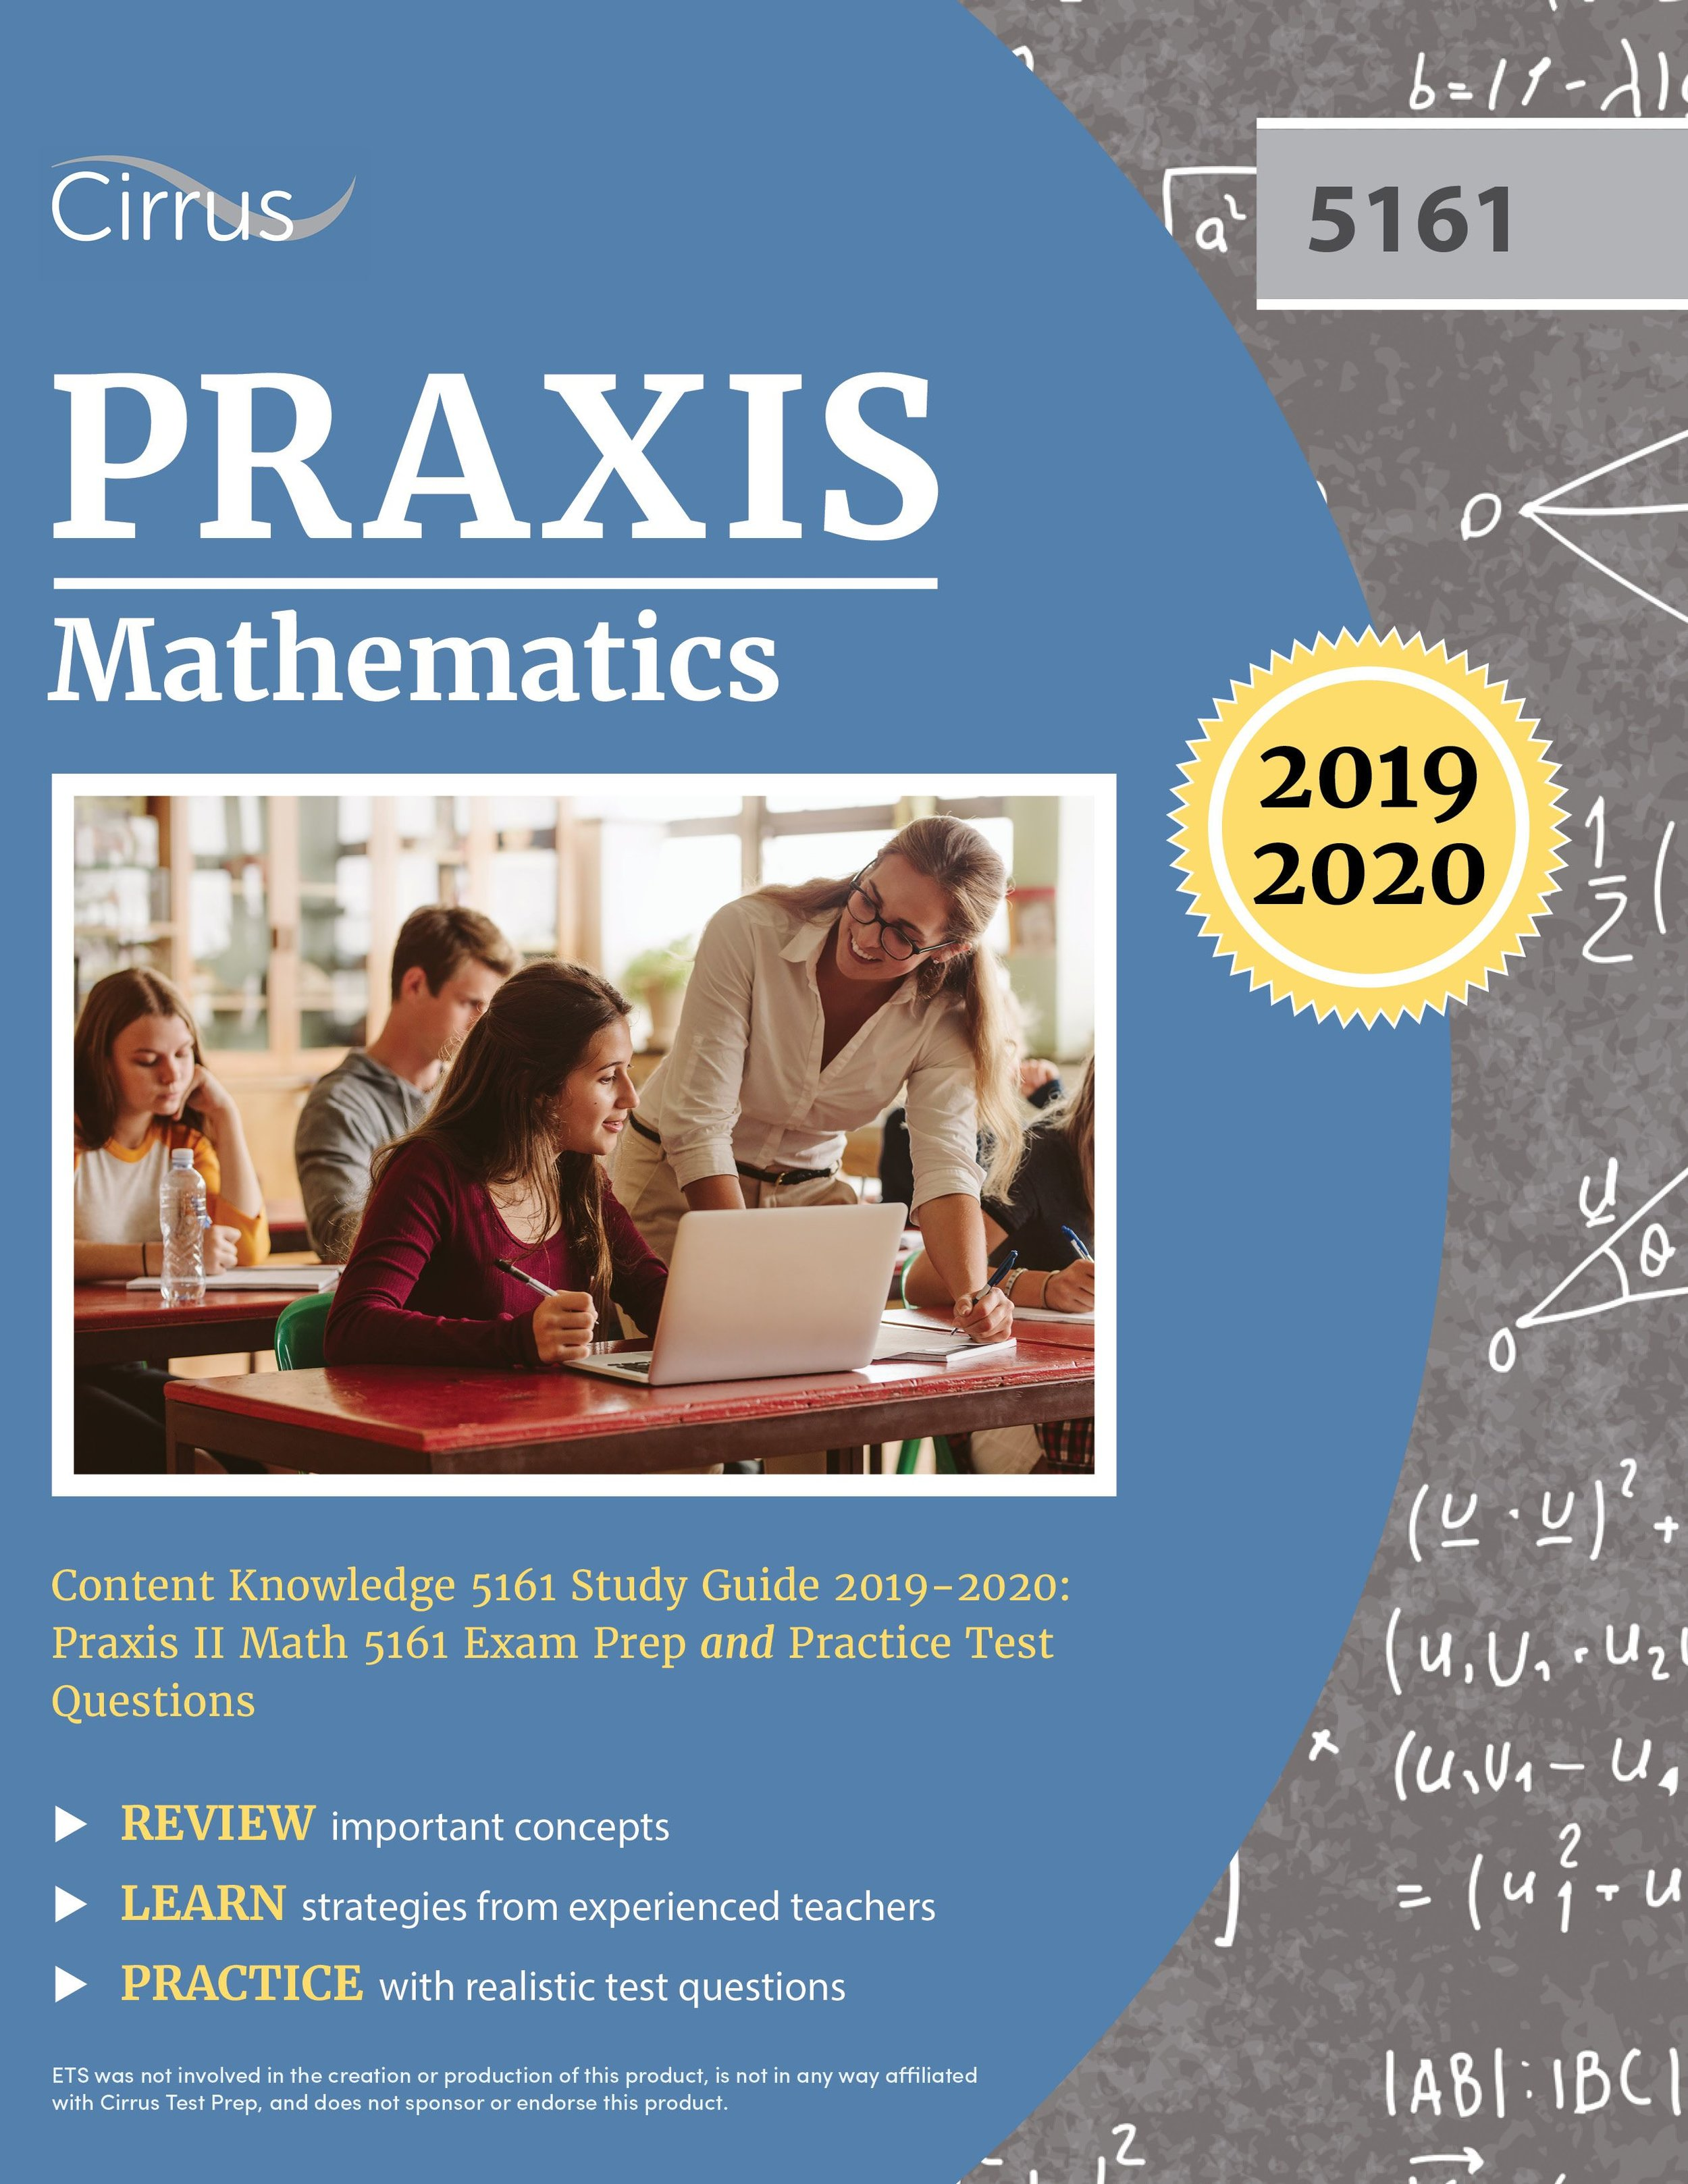 Praxis_math_cover_website-compressor.jpg